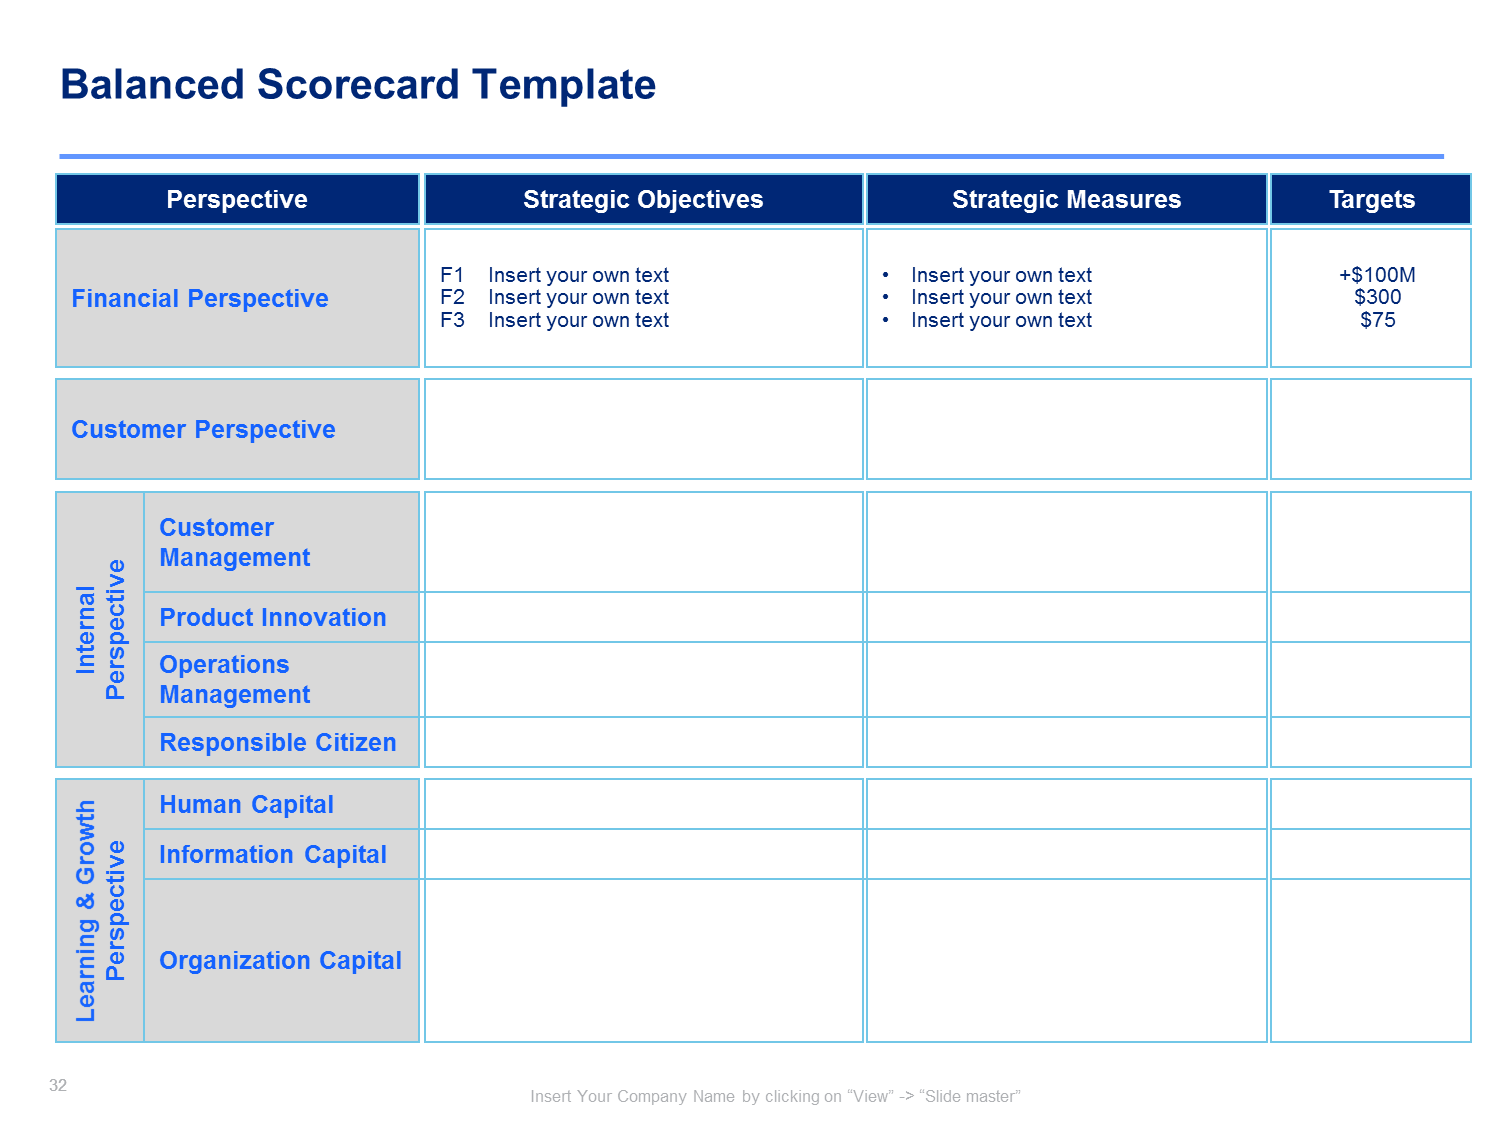 strategy map balanced scorecard strategy map template balanced